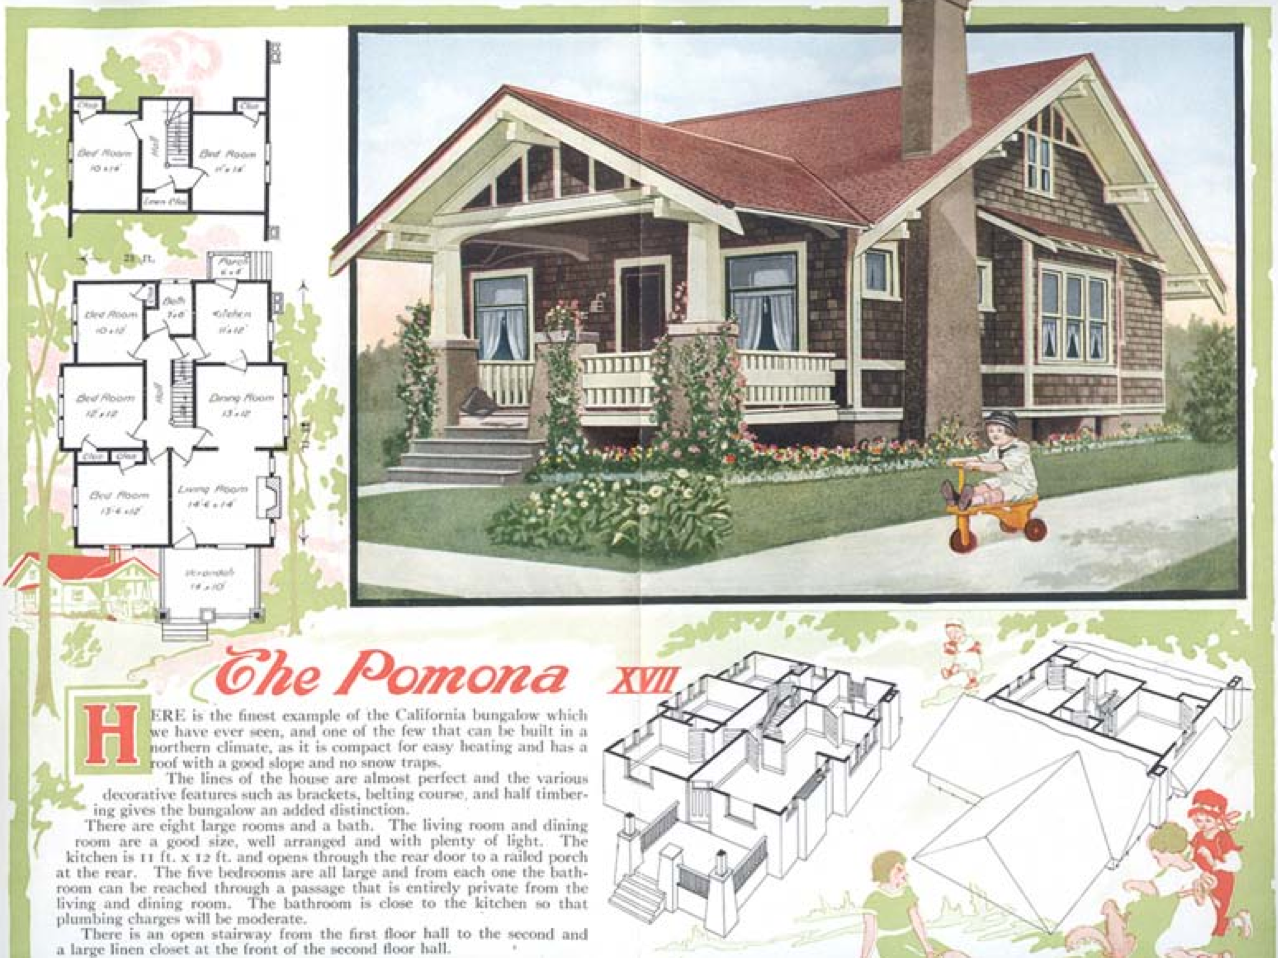 Here Are Some Photos Of Sears Catalog Mail-order Homes